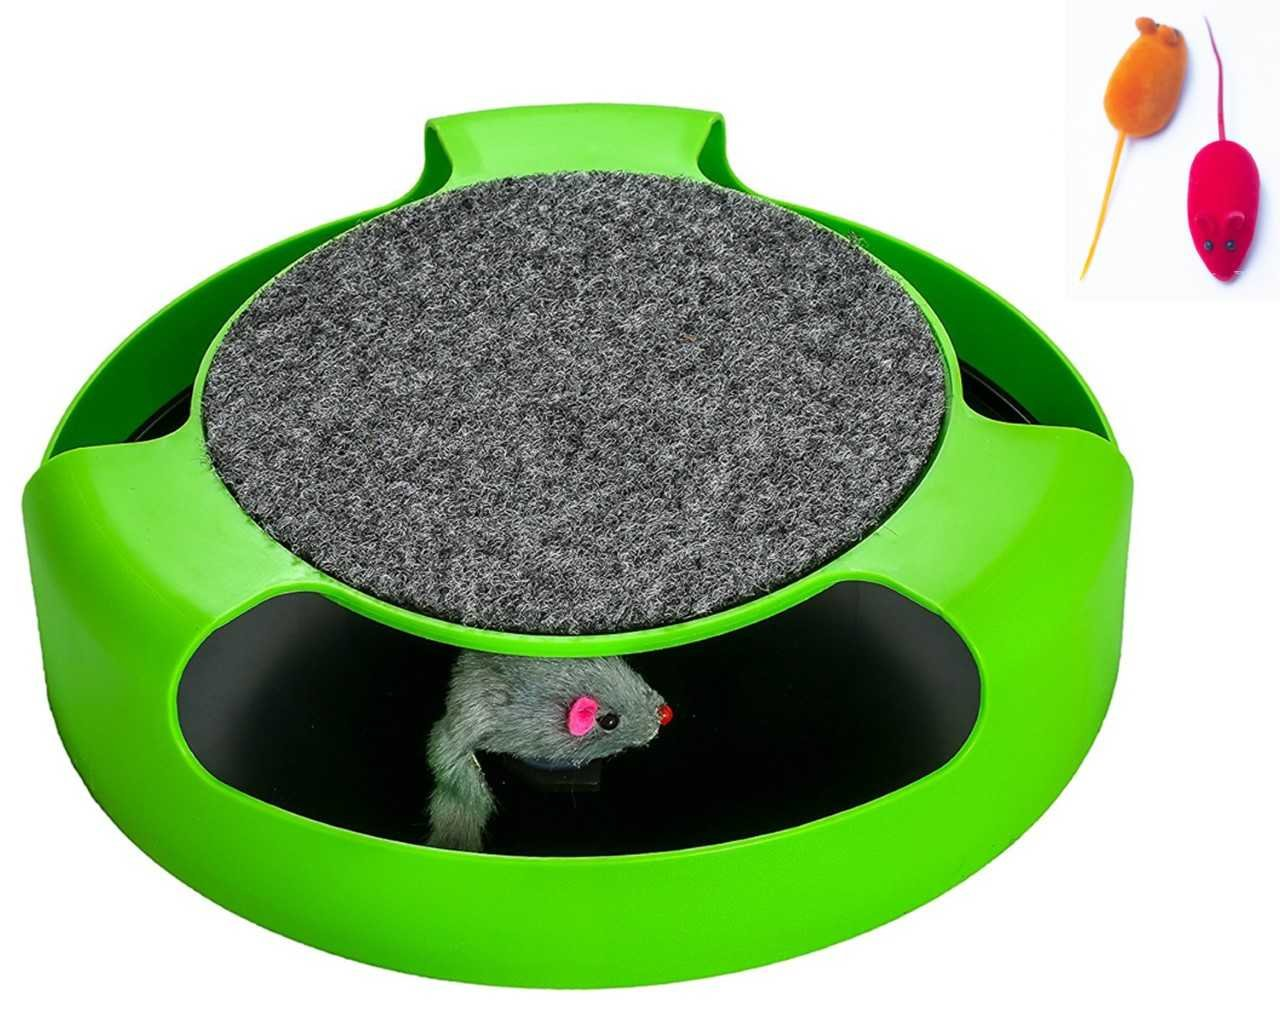 AroPaw Cat Toys Interactive - Cat Toy with Rotating Running Mouse and A Two in One Scratching Pad - Catch The Mouse - Catnip Toy Mouse (Catnip Not Included) - Quality Kitten Toys by AroPaw